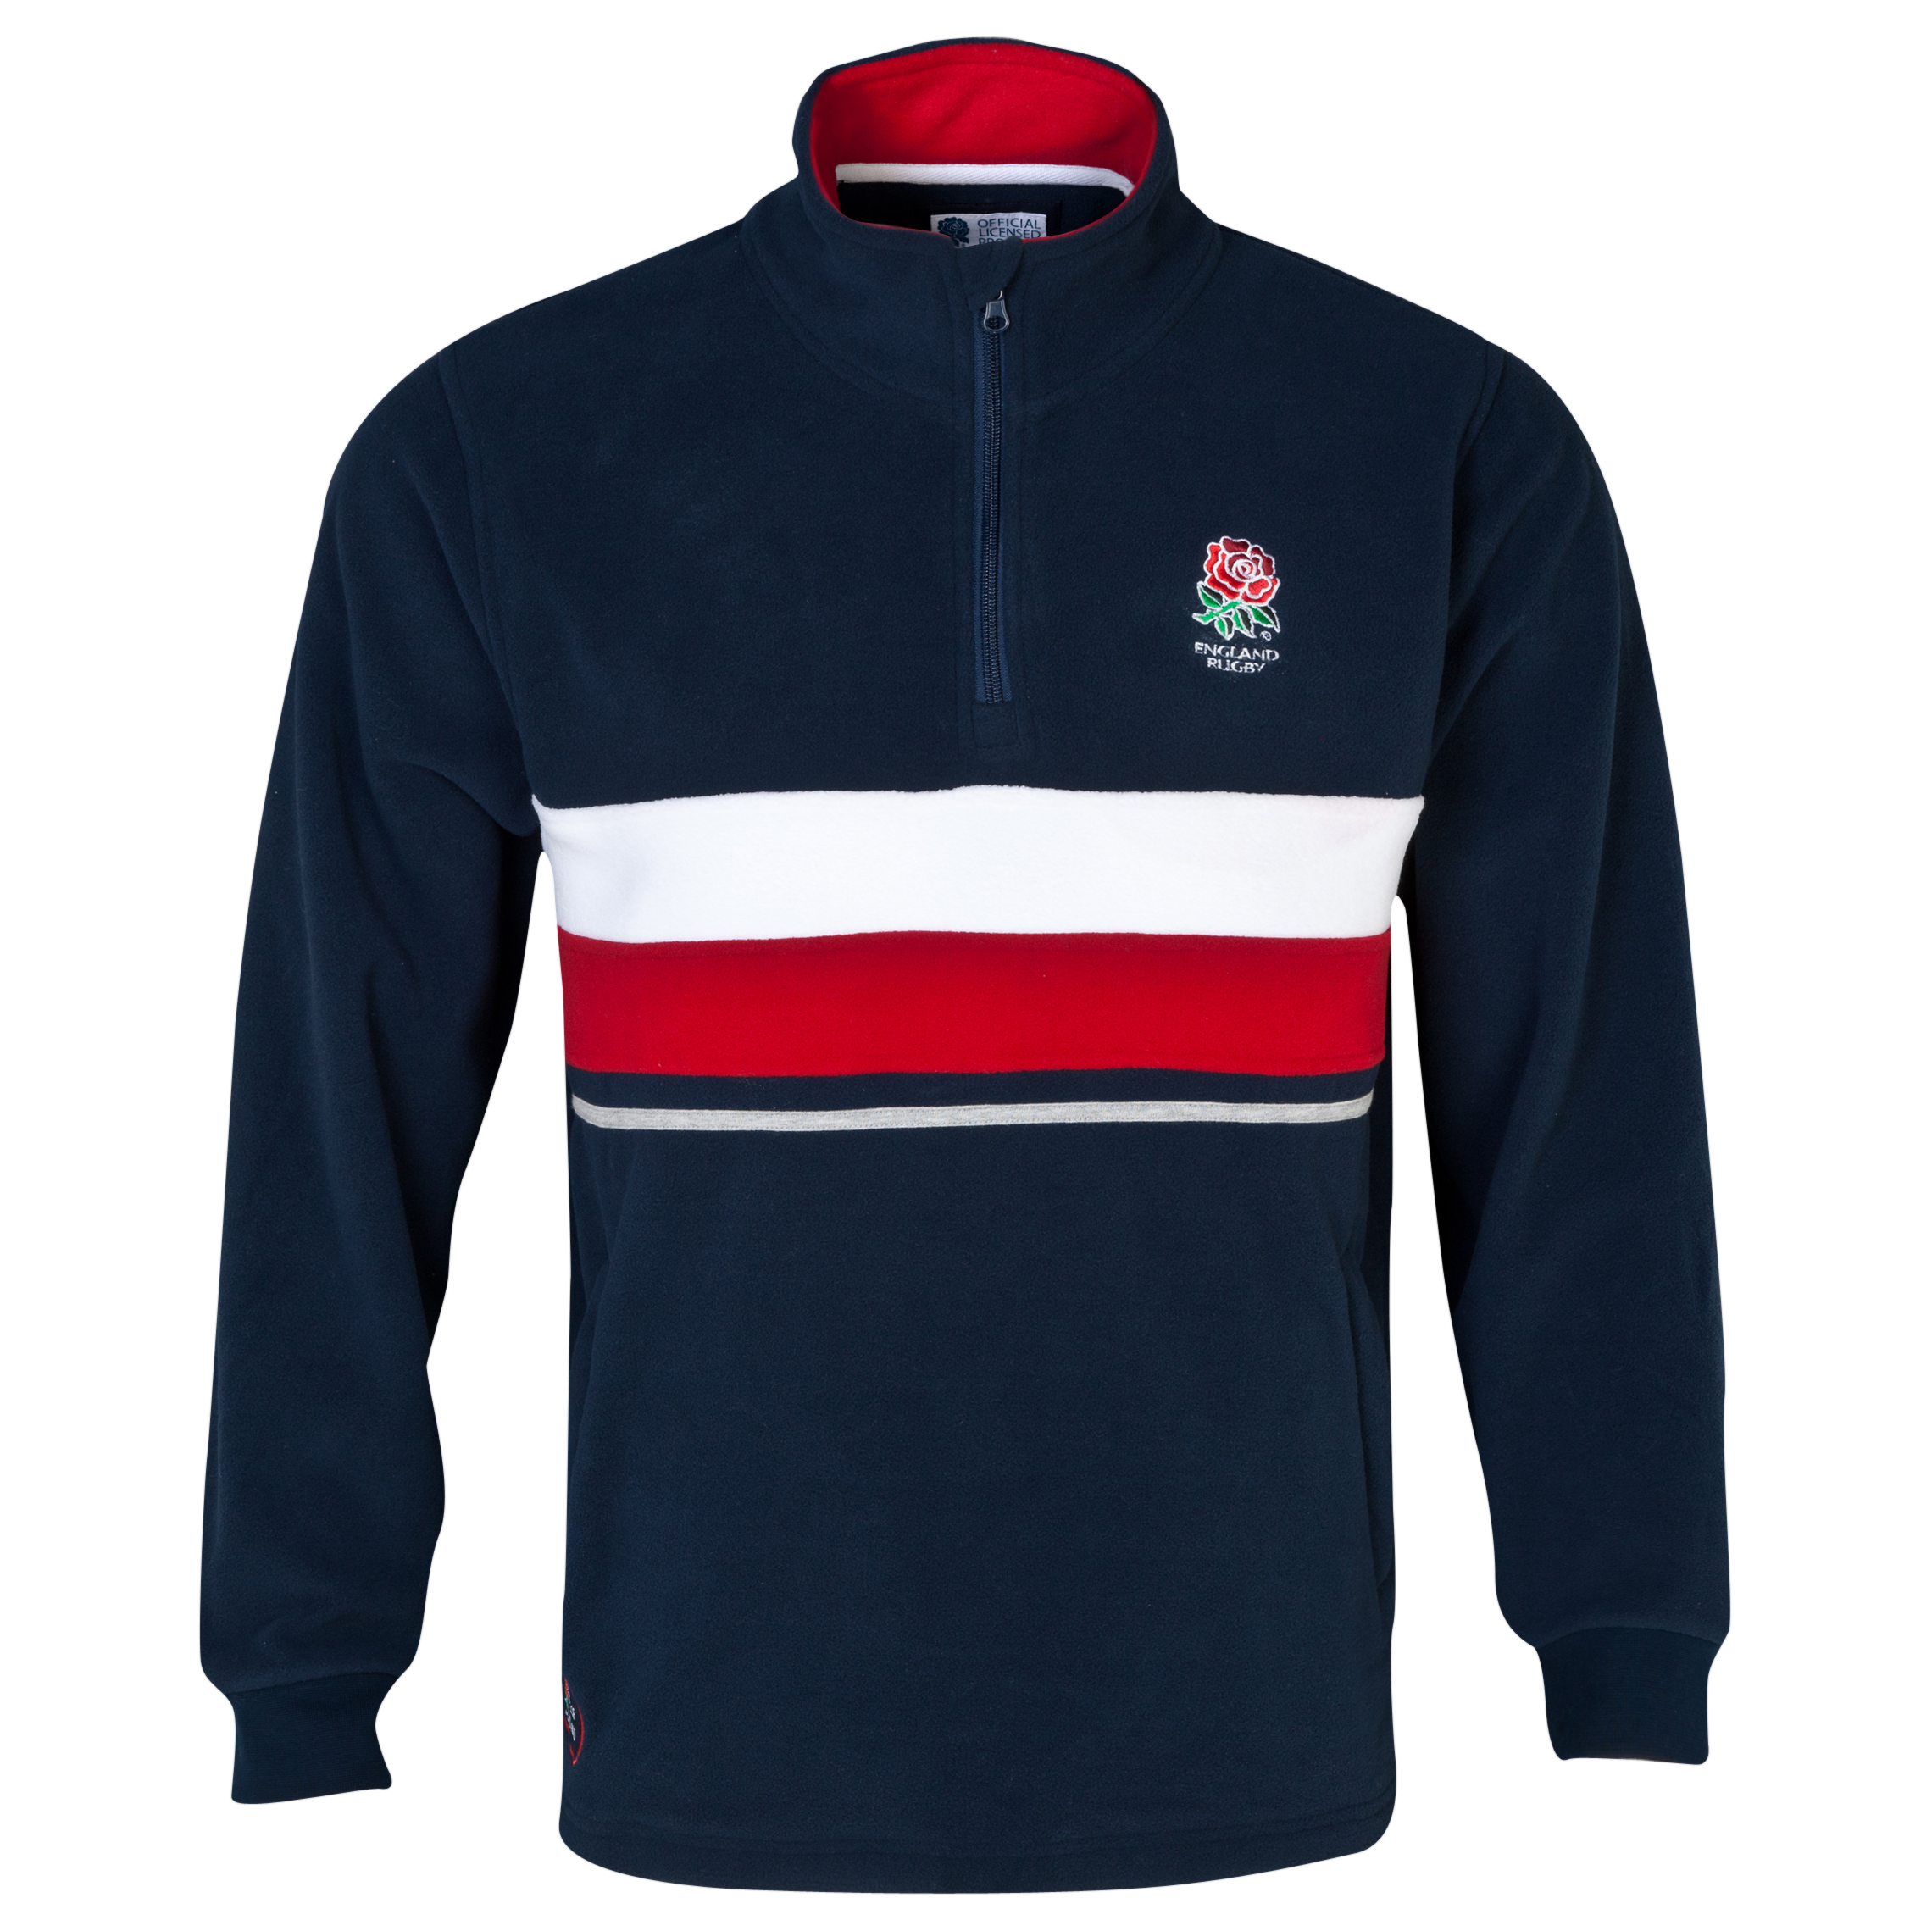 England Rugby Classics Collection 1/4 Zip Micro Fleece - Boys Navy